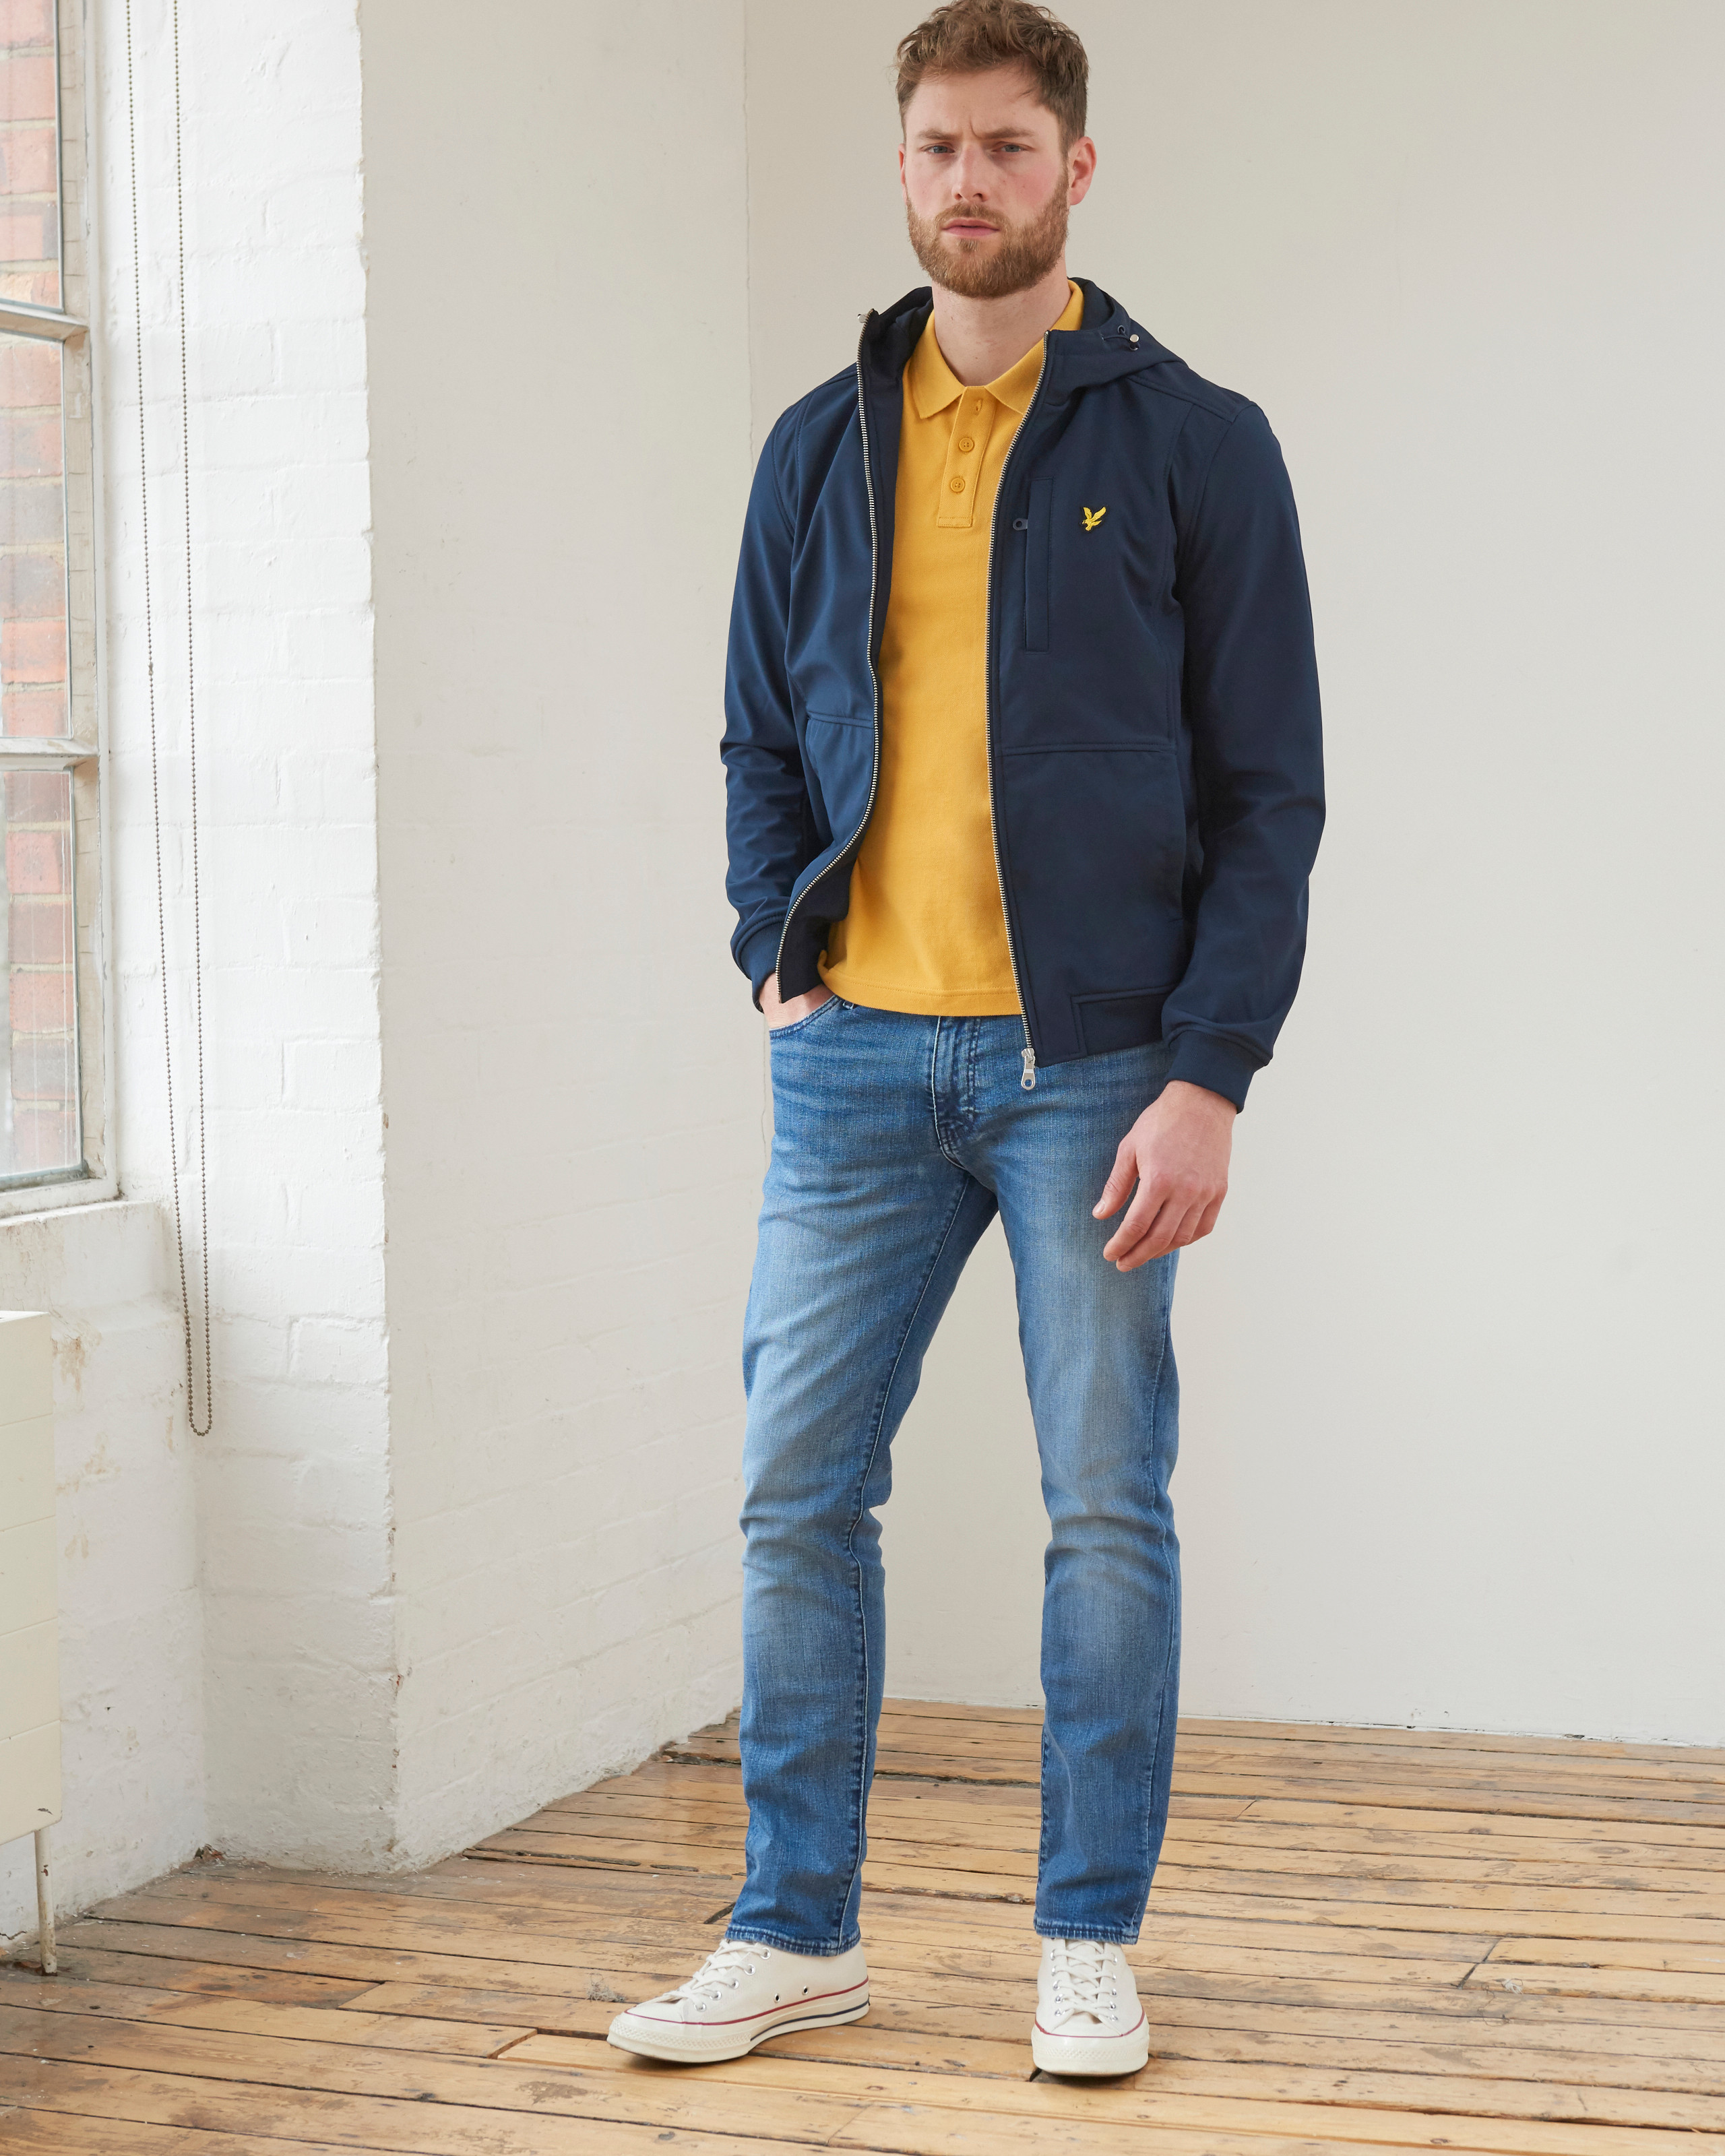 Men's outfit idea for 2021 with waterproof jacket / windbreaker, bold coloured polo, mid blue jeans. Suitable for spring and autumn.